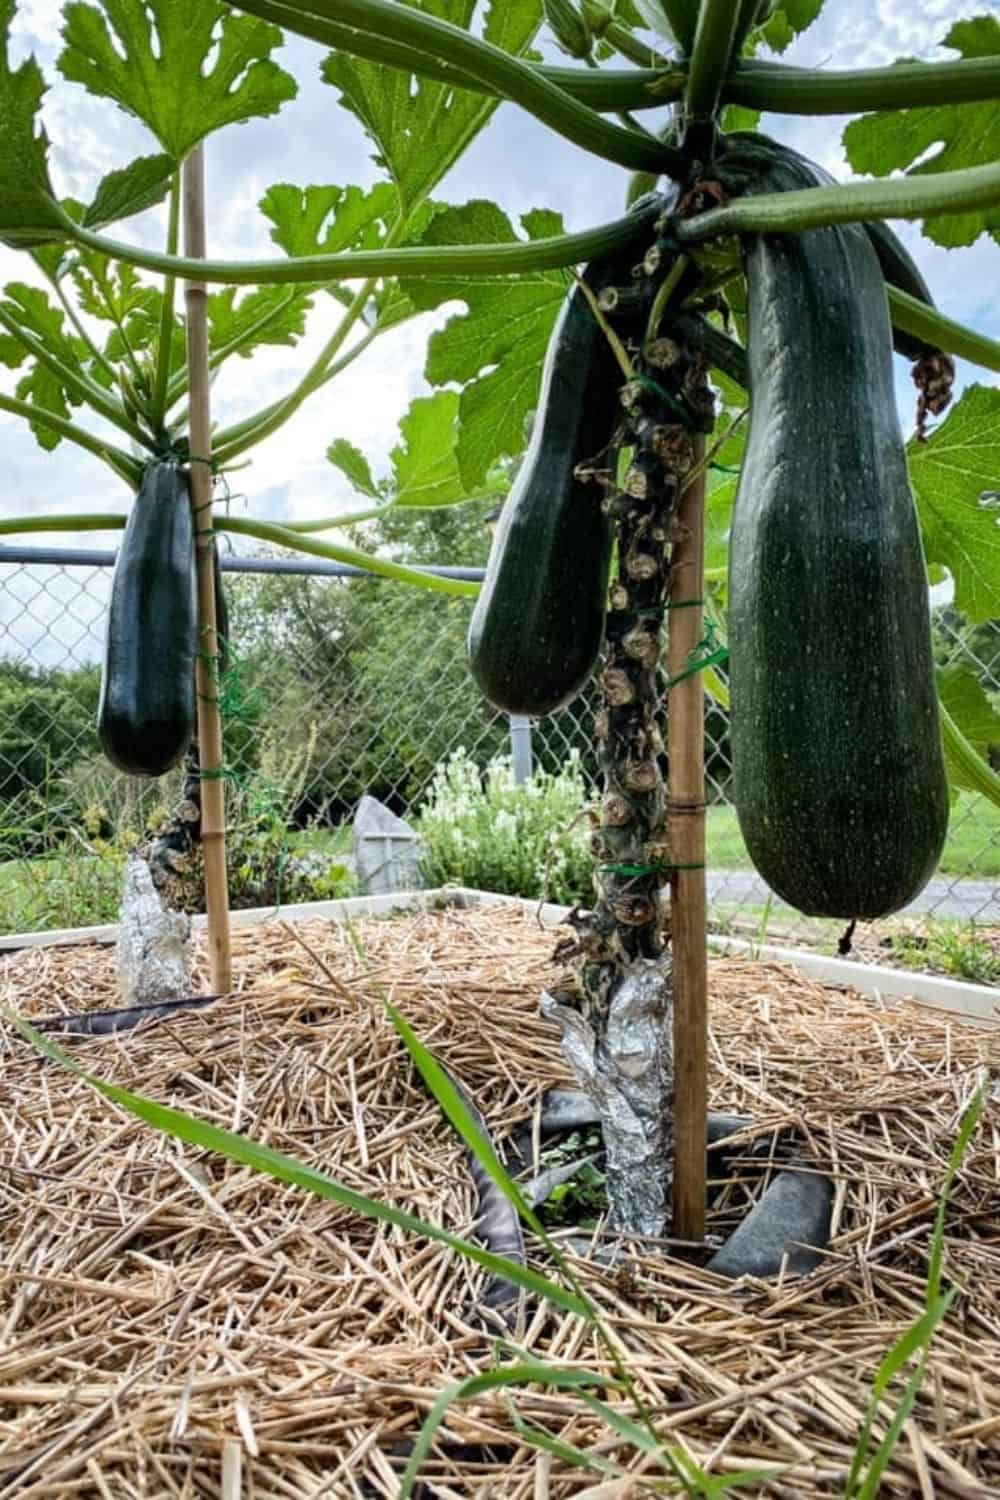 How To Plant And Grow Zucchini - Guide To A Bountiful Harvest